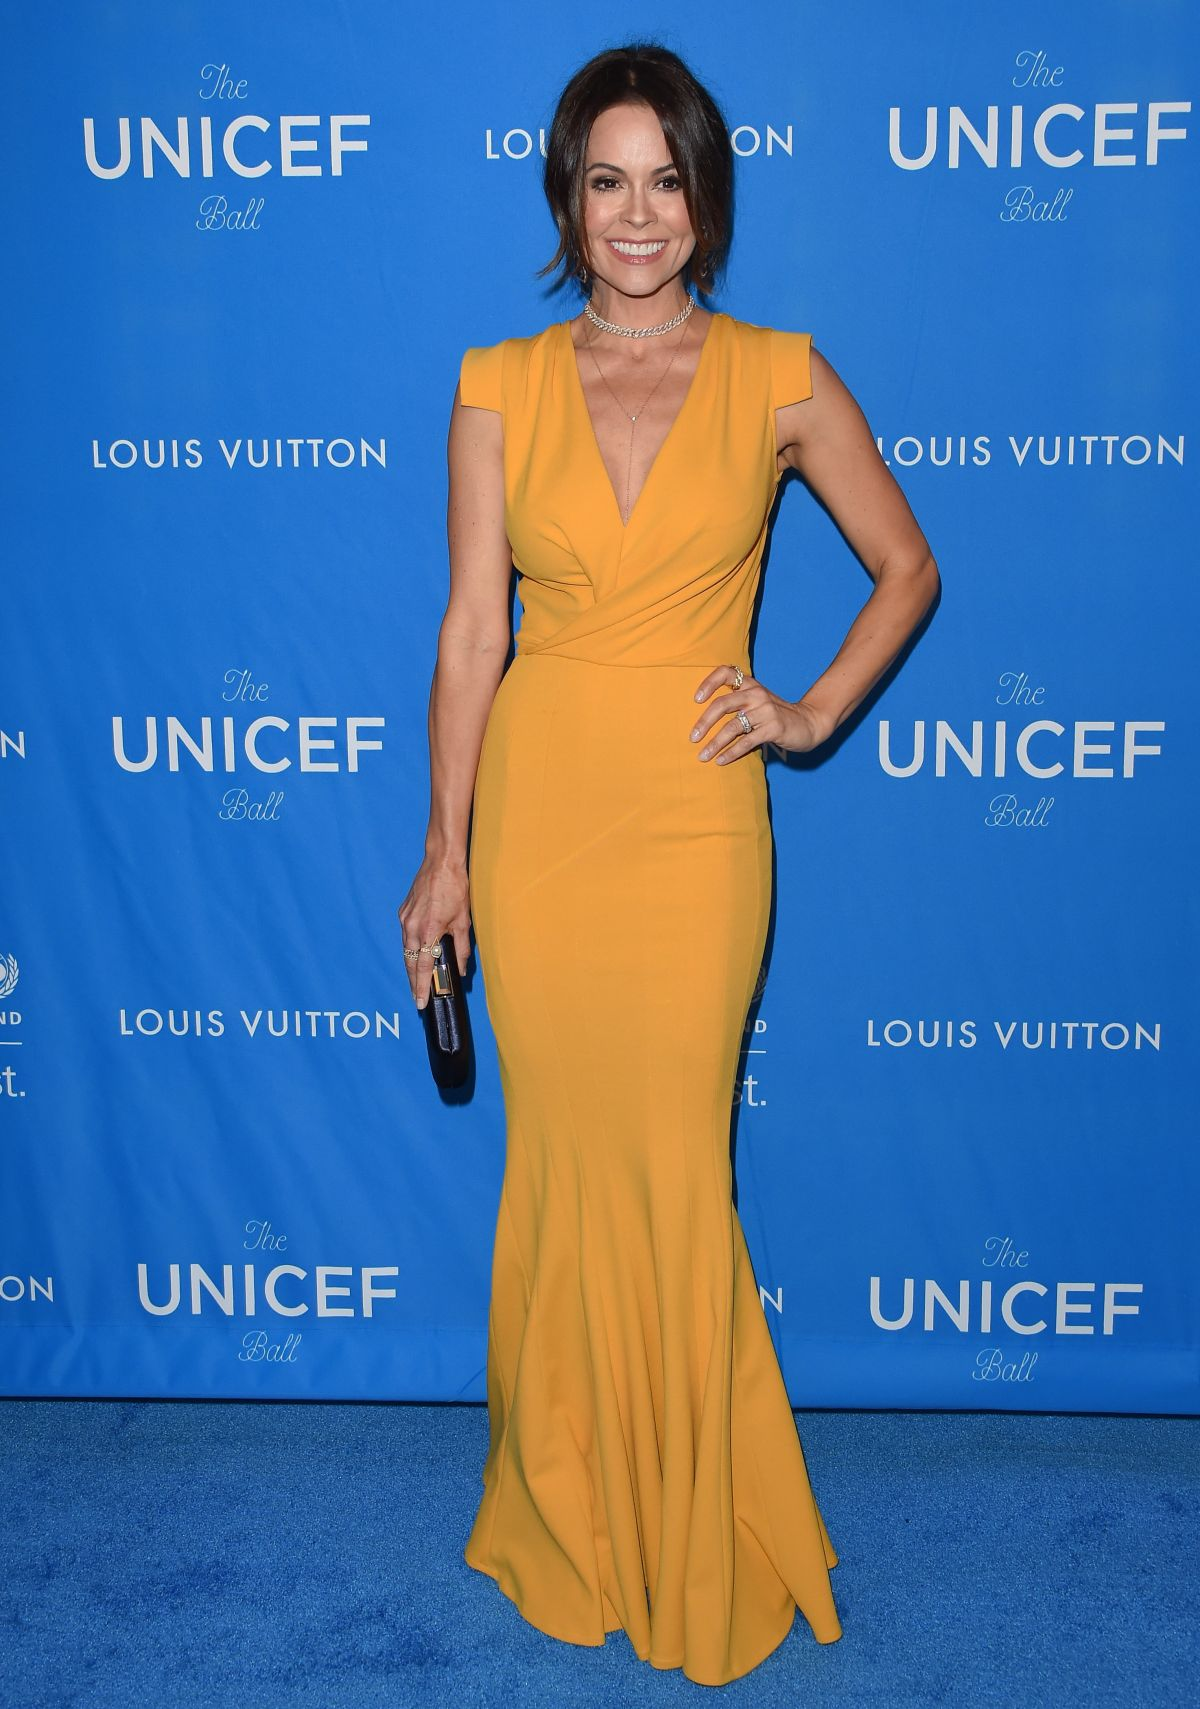 brooke-burke-at-6th-biennial-unicef-ball-in-beverly-hills-01-12-2016_2